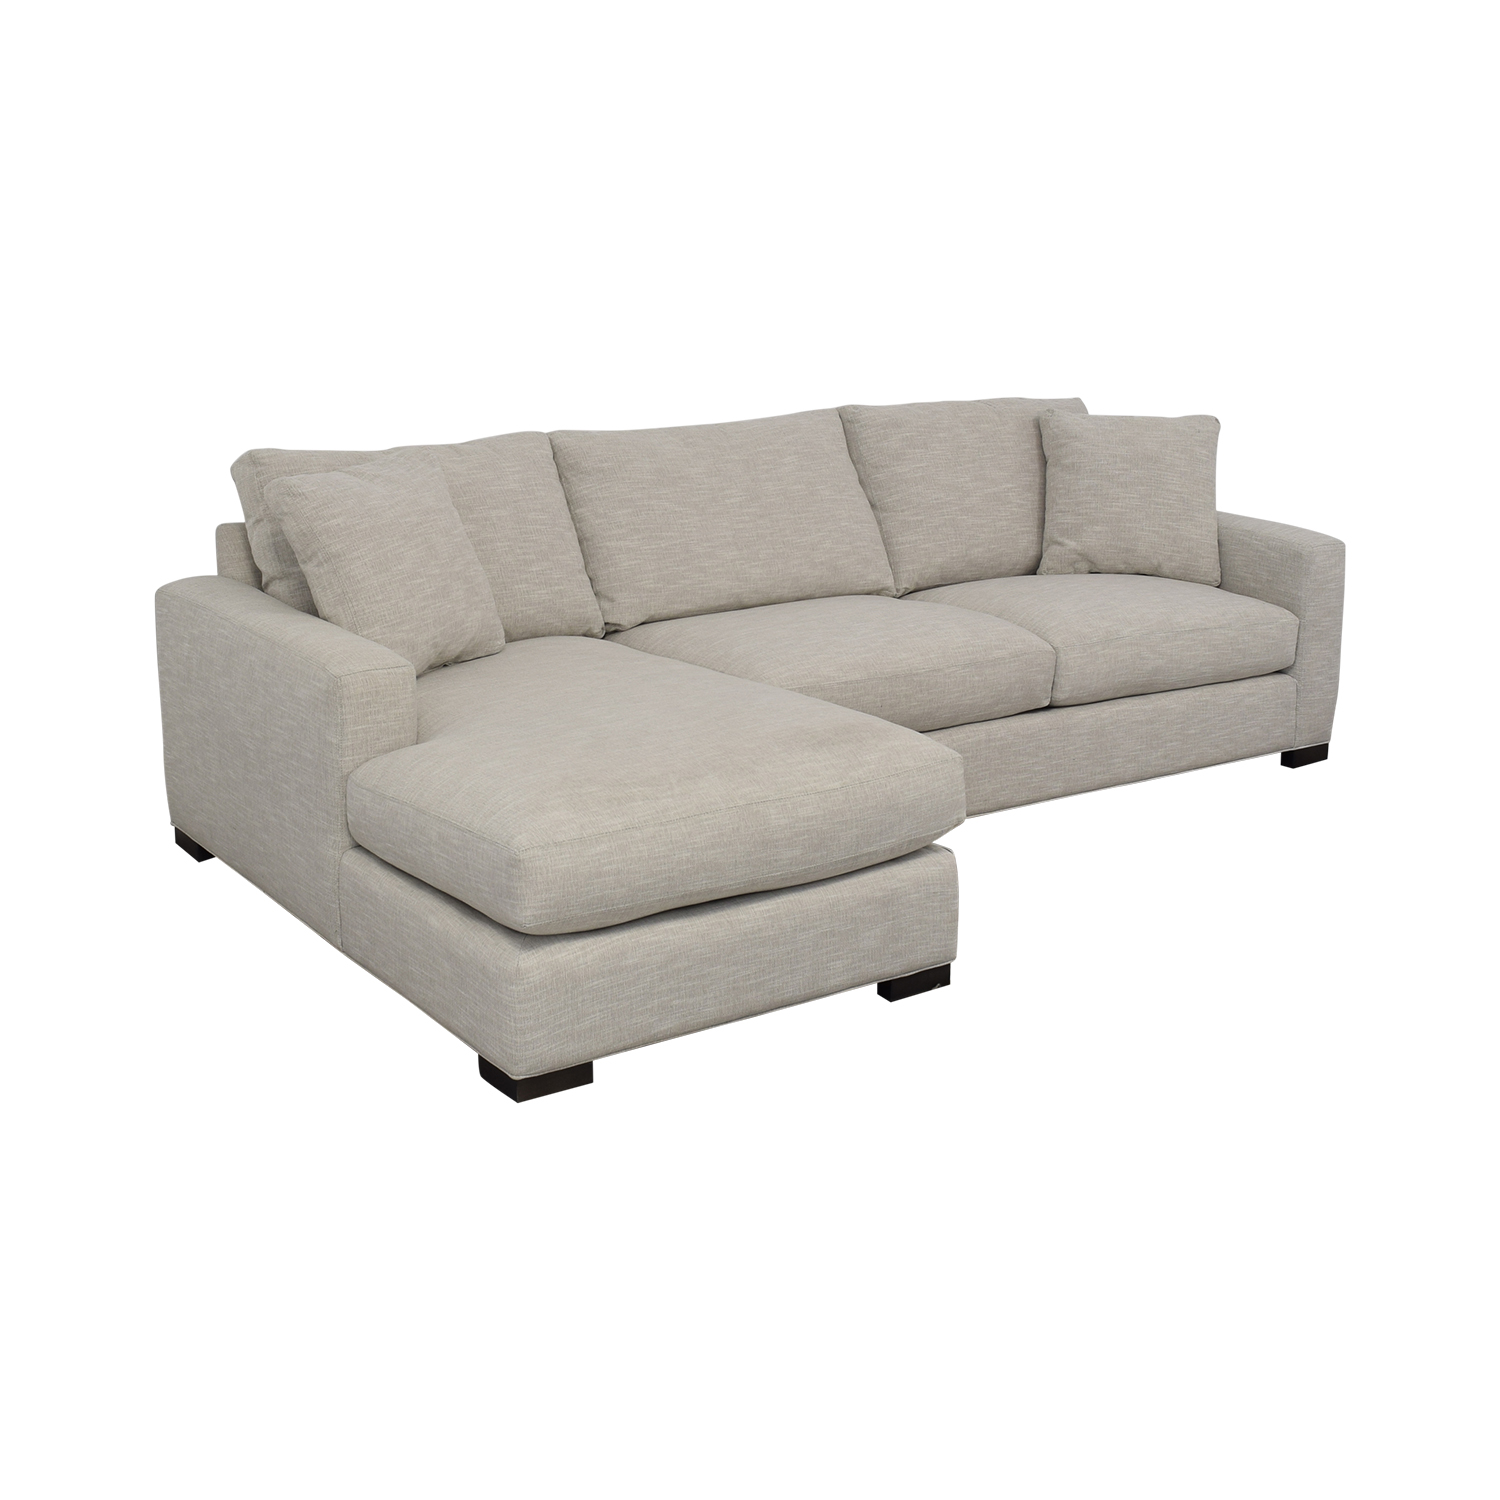 Room & Board Room & Board Metro Sofa with Chaise second hand